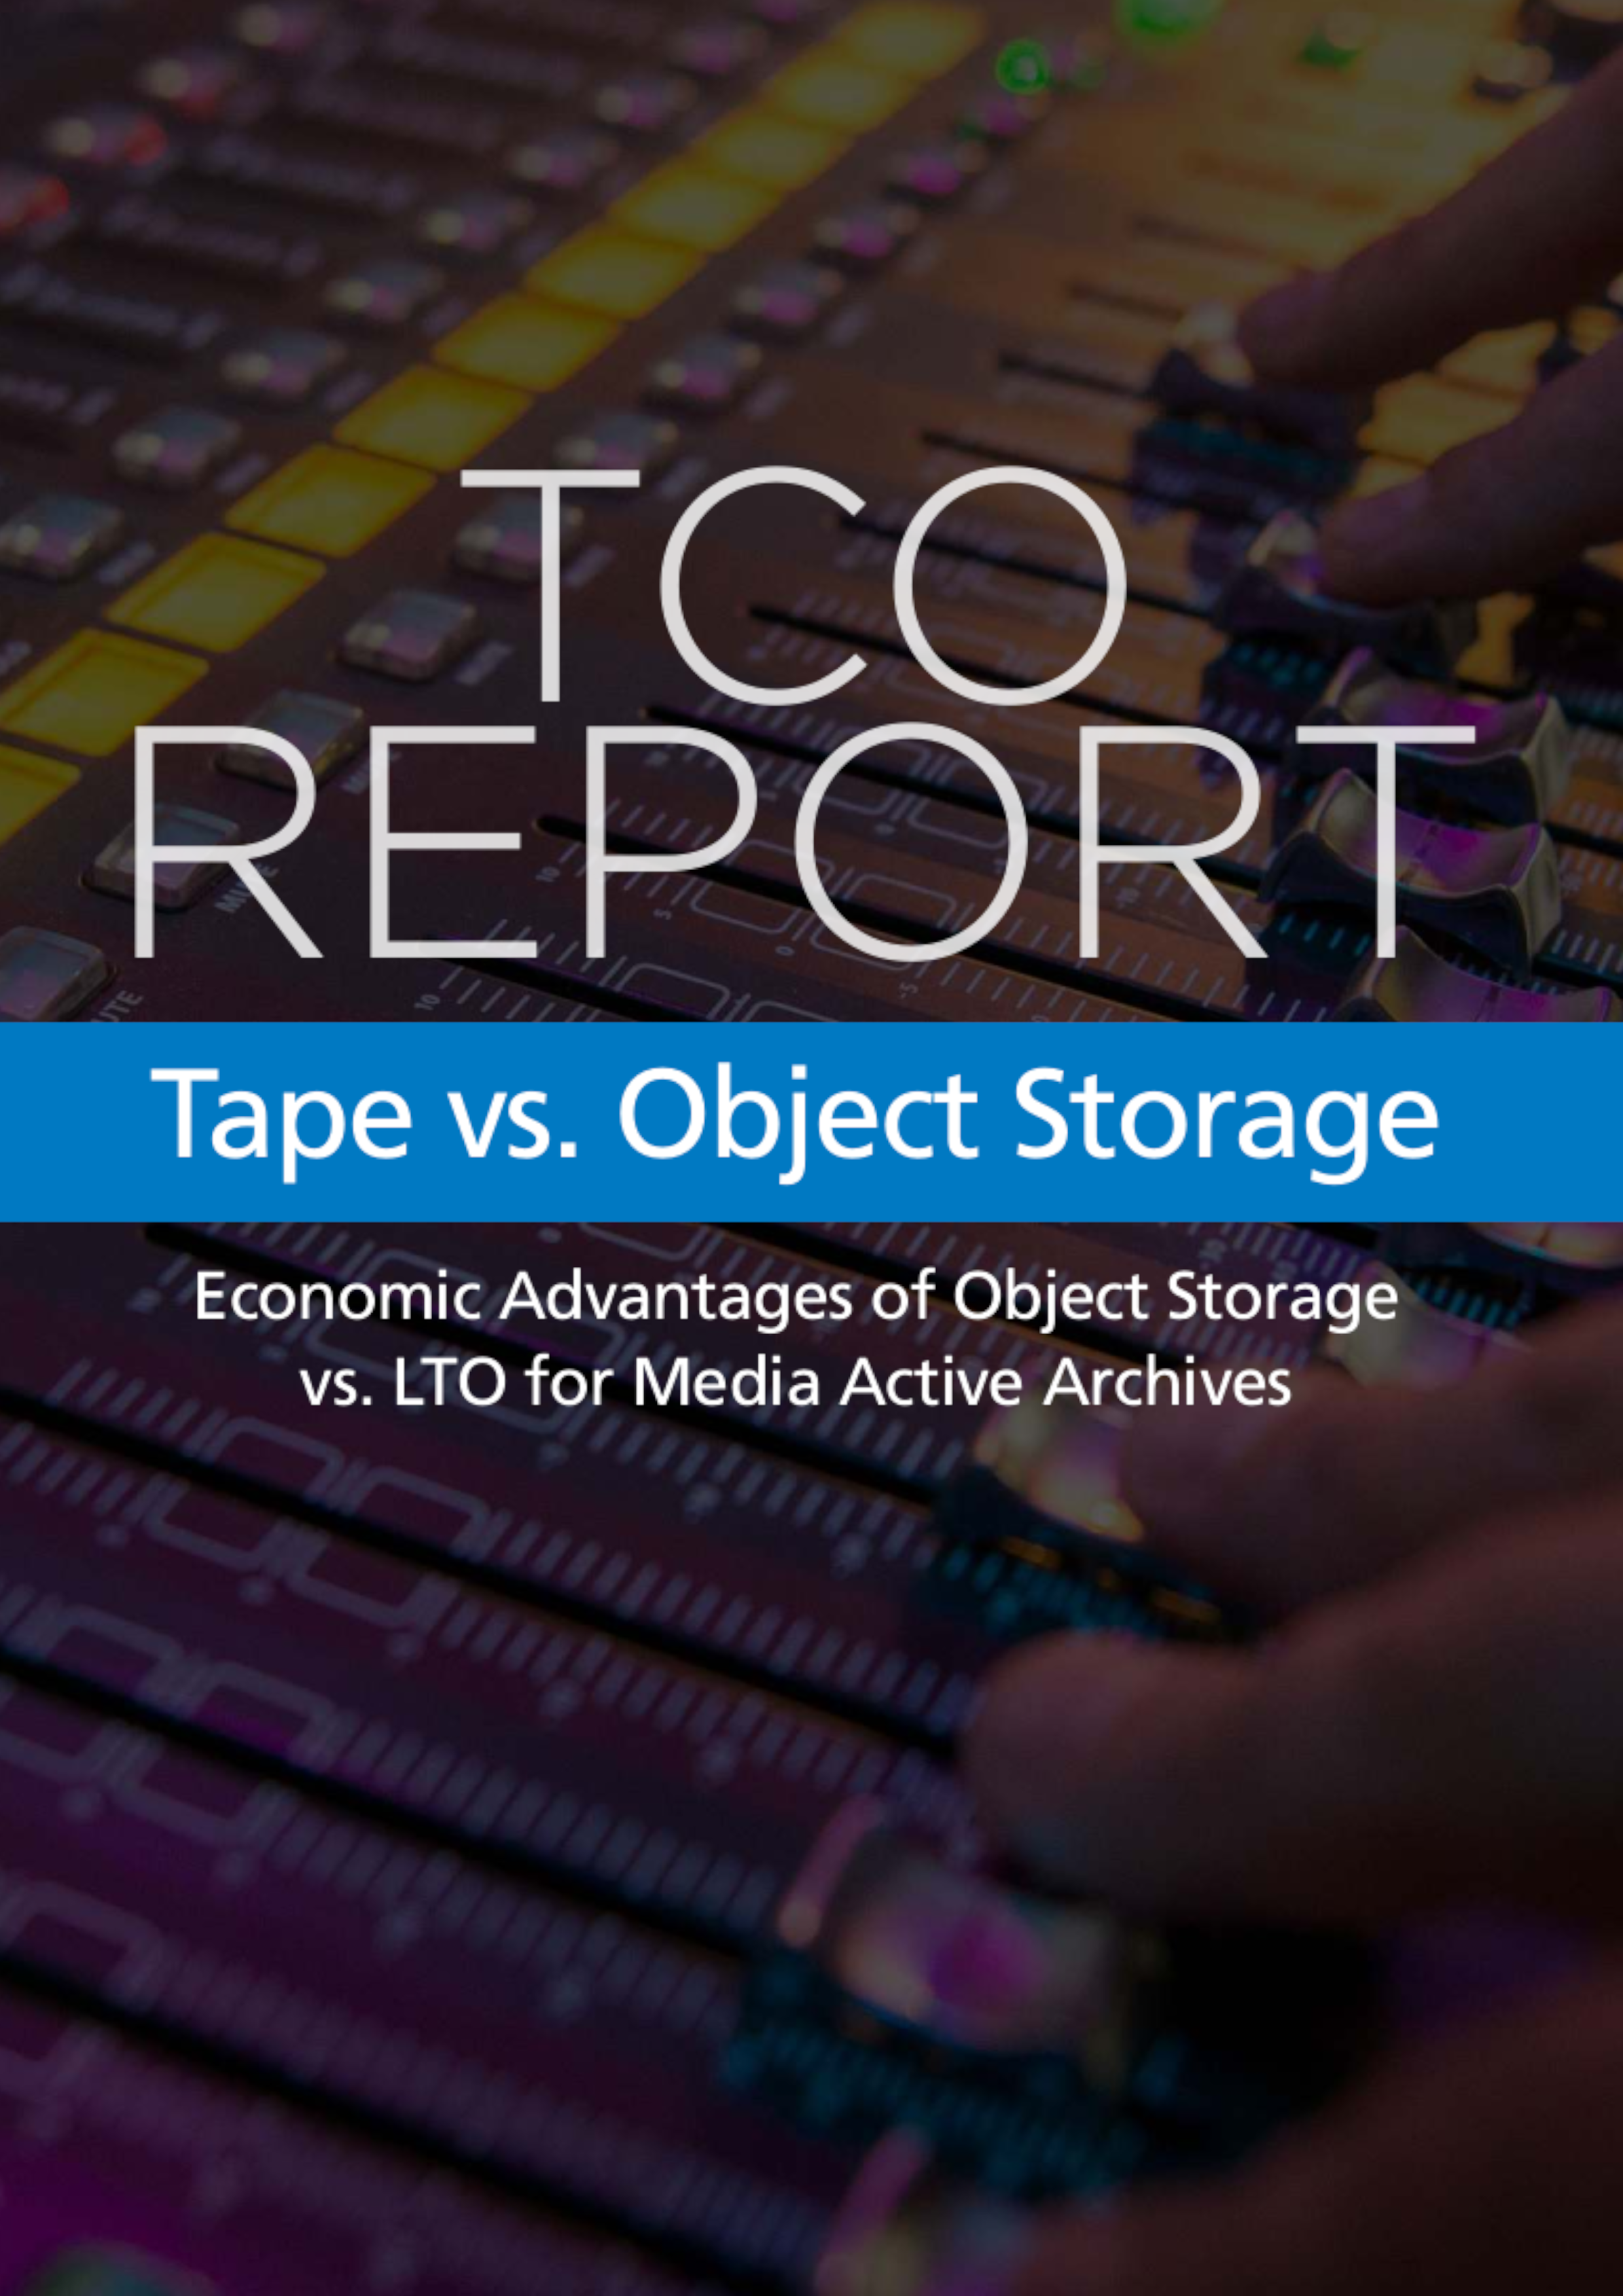 ForsideA4-TCO-Cloudian-Tape-vs-Object-Storage